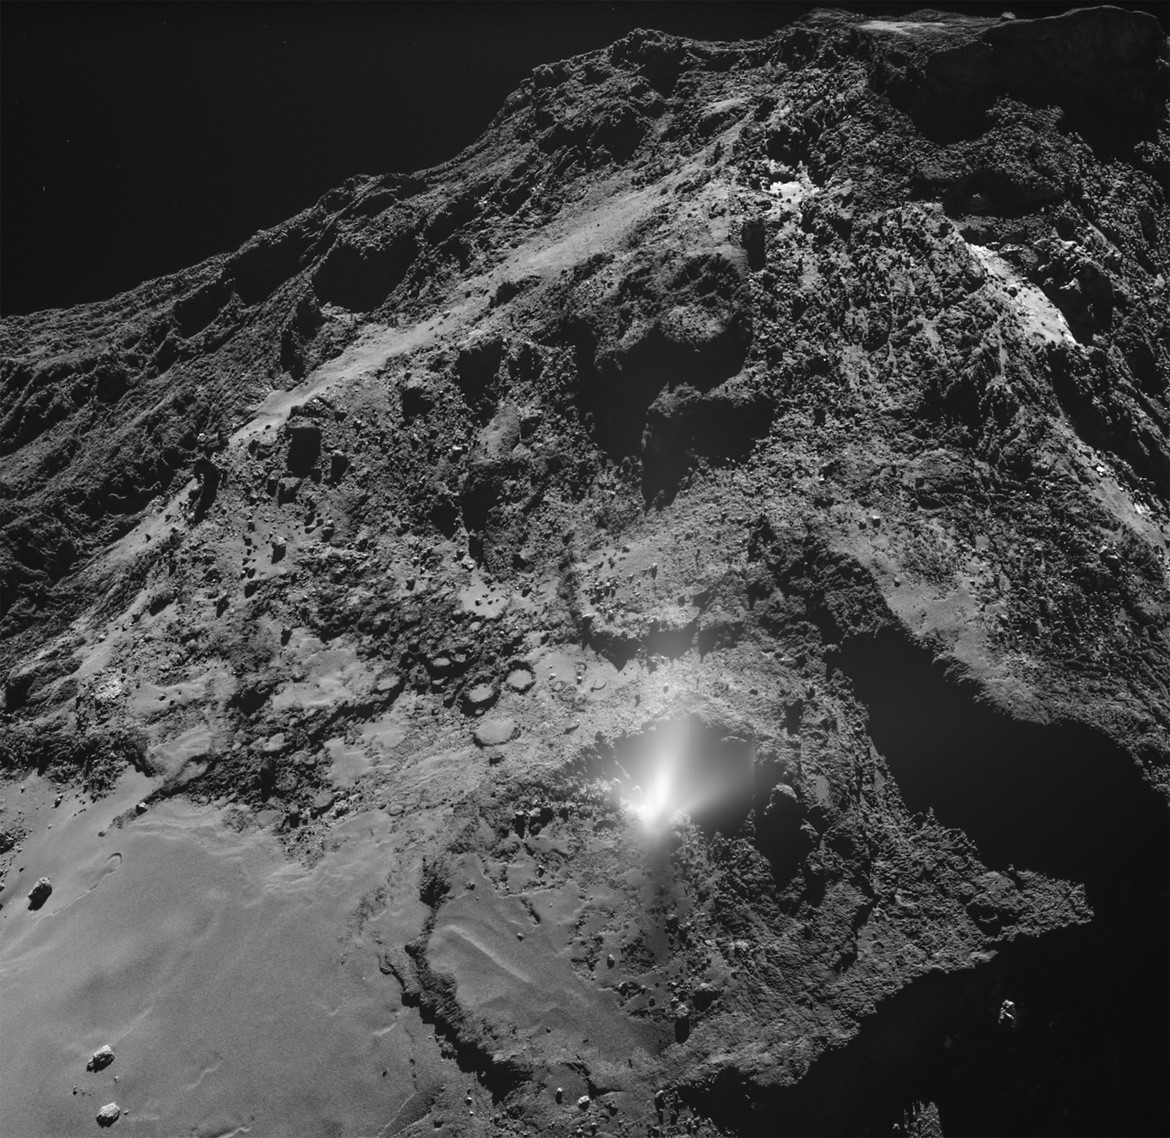 A plume of water and dust erupted on the comet 67/P on July 3, 2016, and was caught on camera by the Rosetta spacecraft from just  kilometers away. Credit: ESA/Rosetta/MPS for OSIRIS Team MPS/UPD/LAM/IAA/SSO/INTA/UPM/DASP/IDA